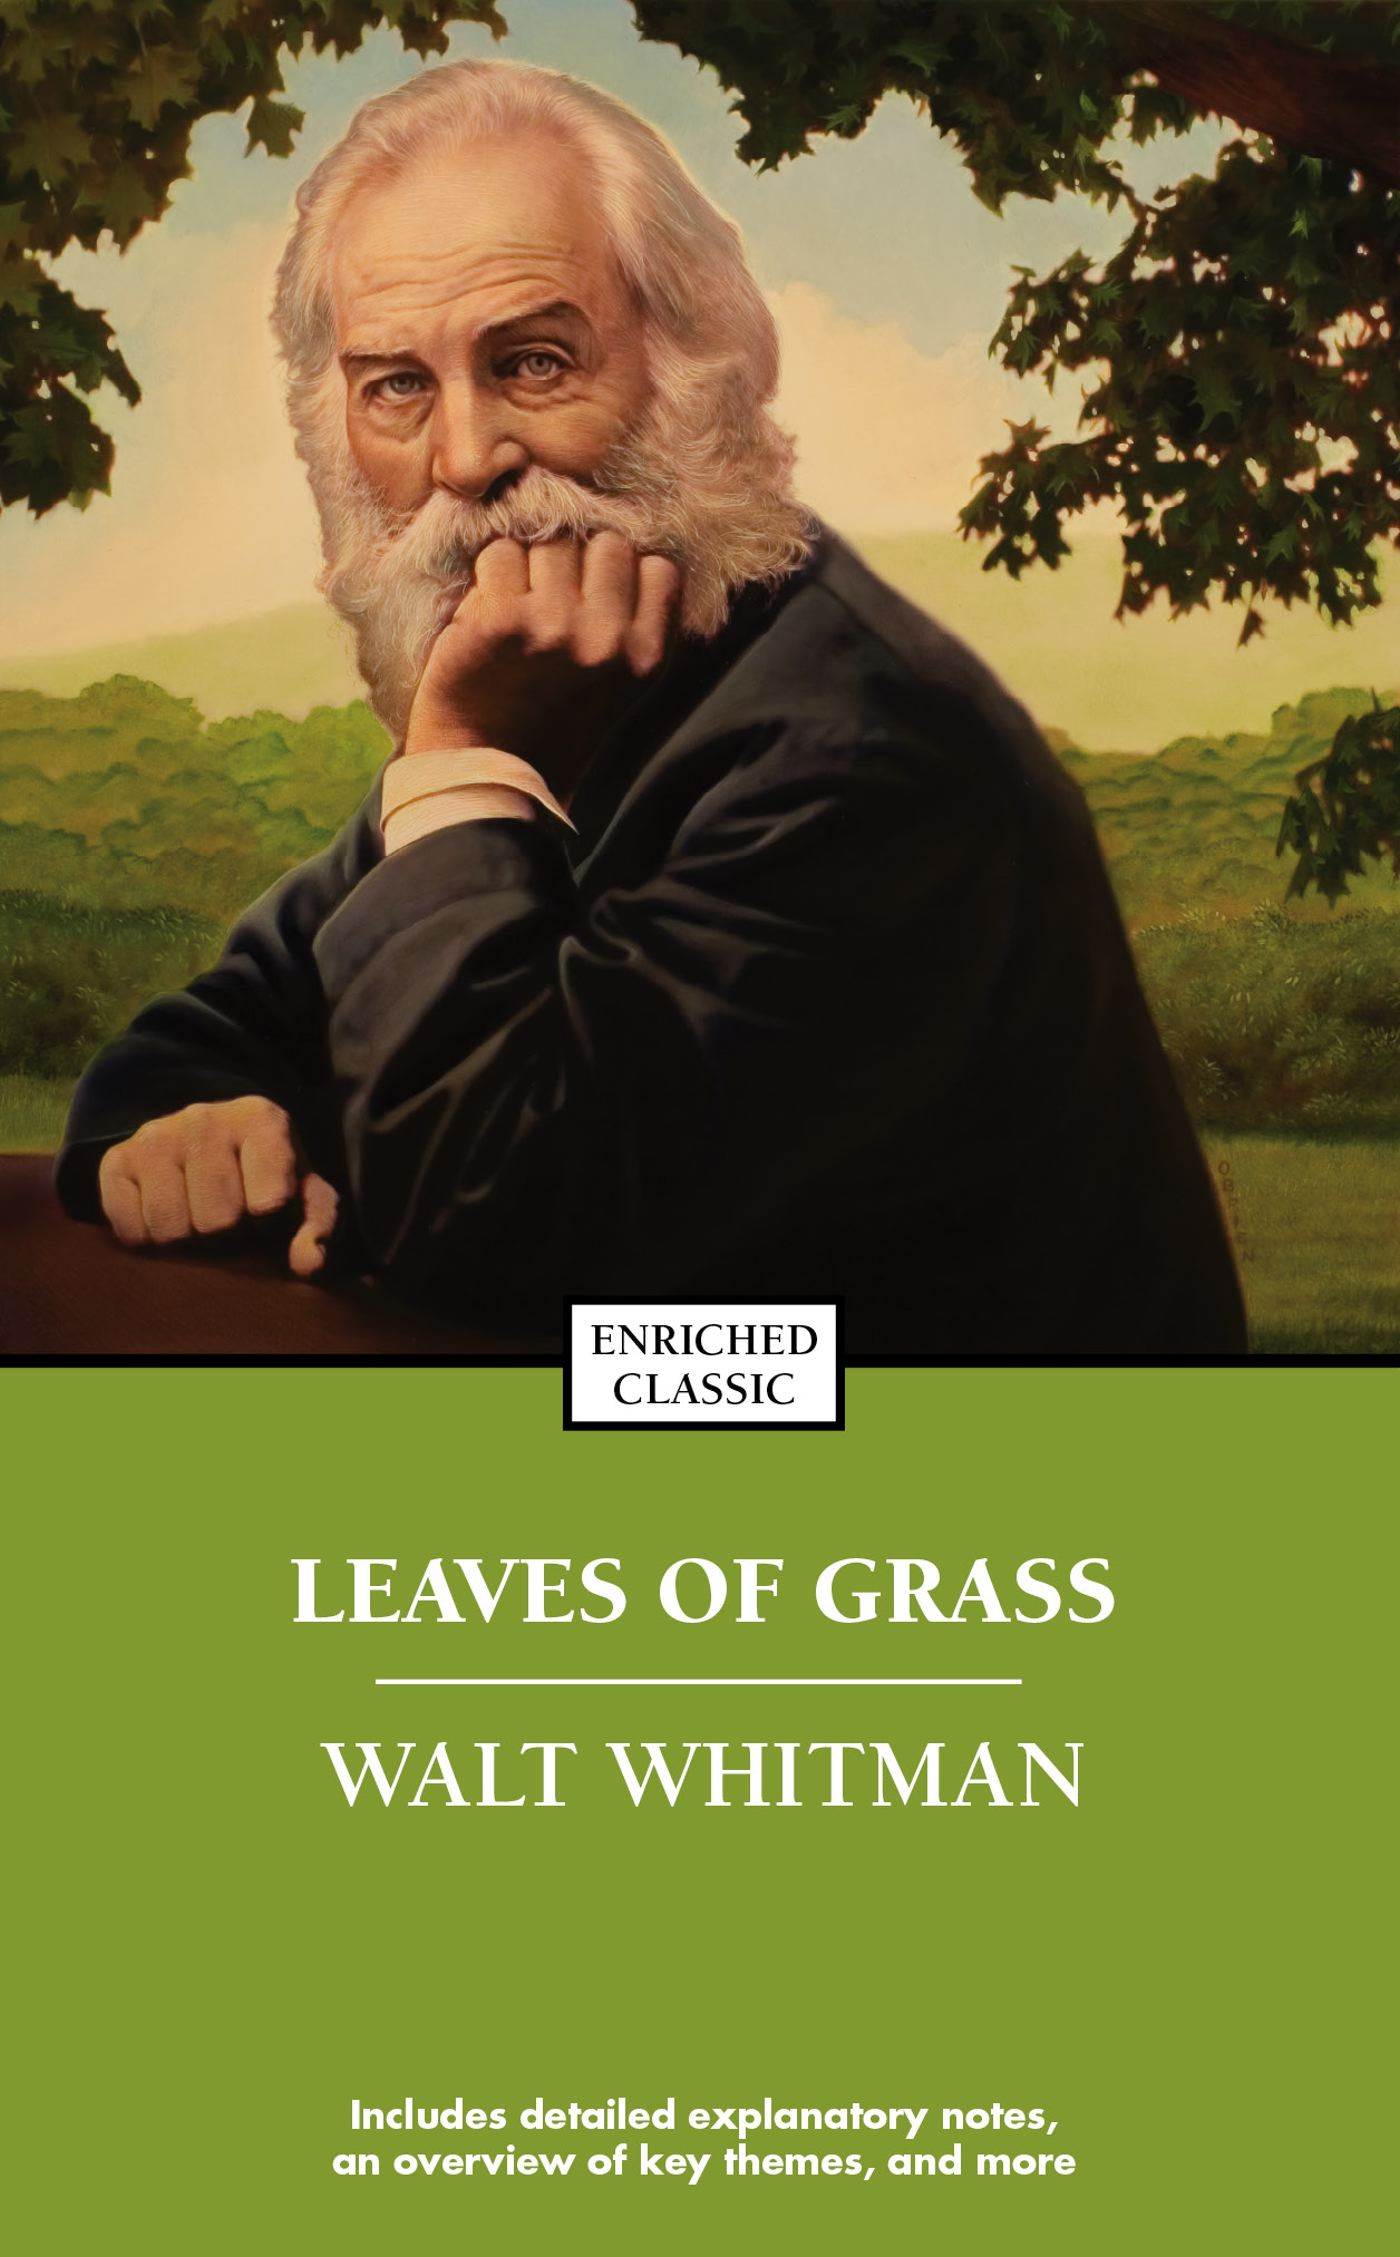 an analysis of walt whitmans leaves of grass Quick answer according to an analysis on cliffs notes of leaves of grass by walt whitman, the three main themes are a celebration of his own individuality, an appreciation of america and democracy, and an expression of universal themes, such as birth, death and resurrection.